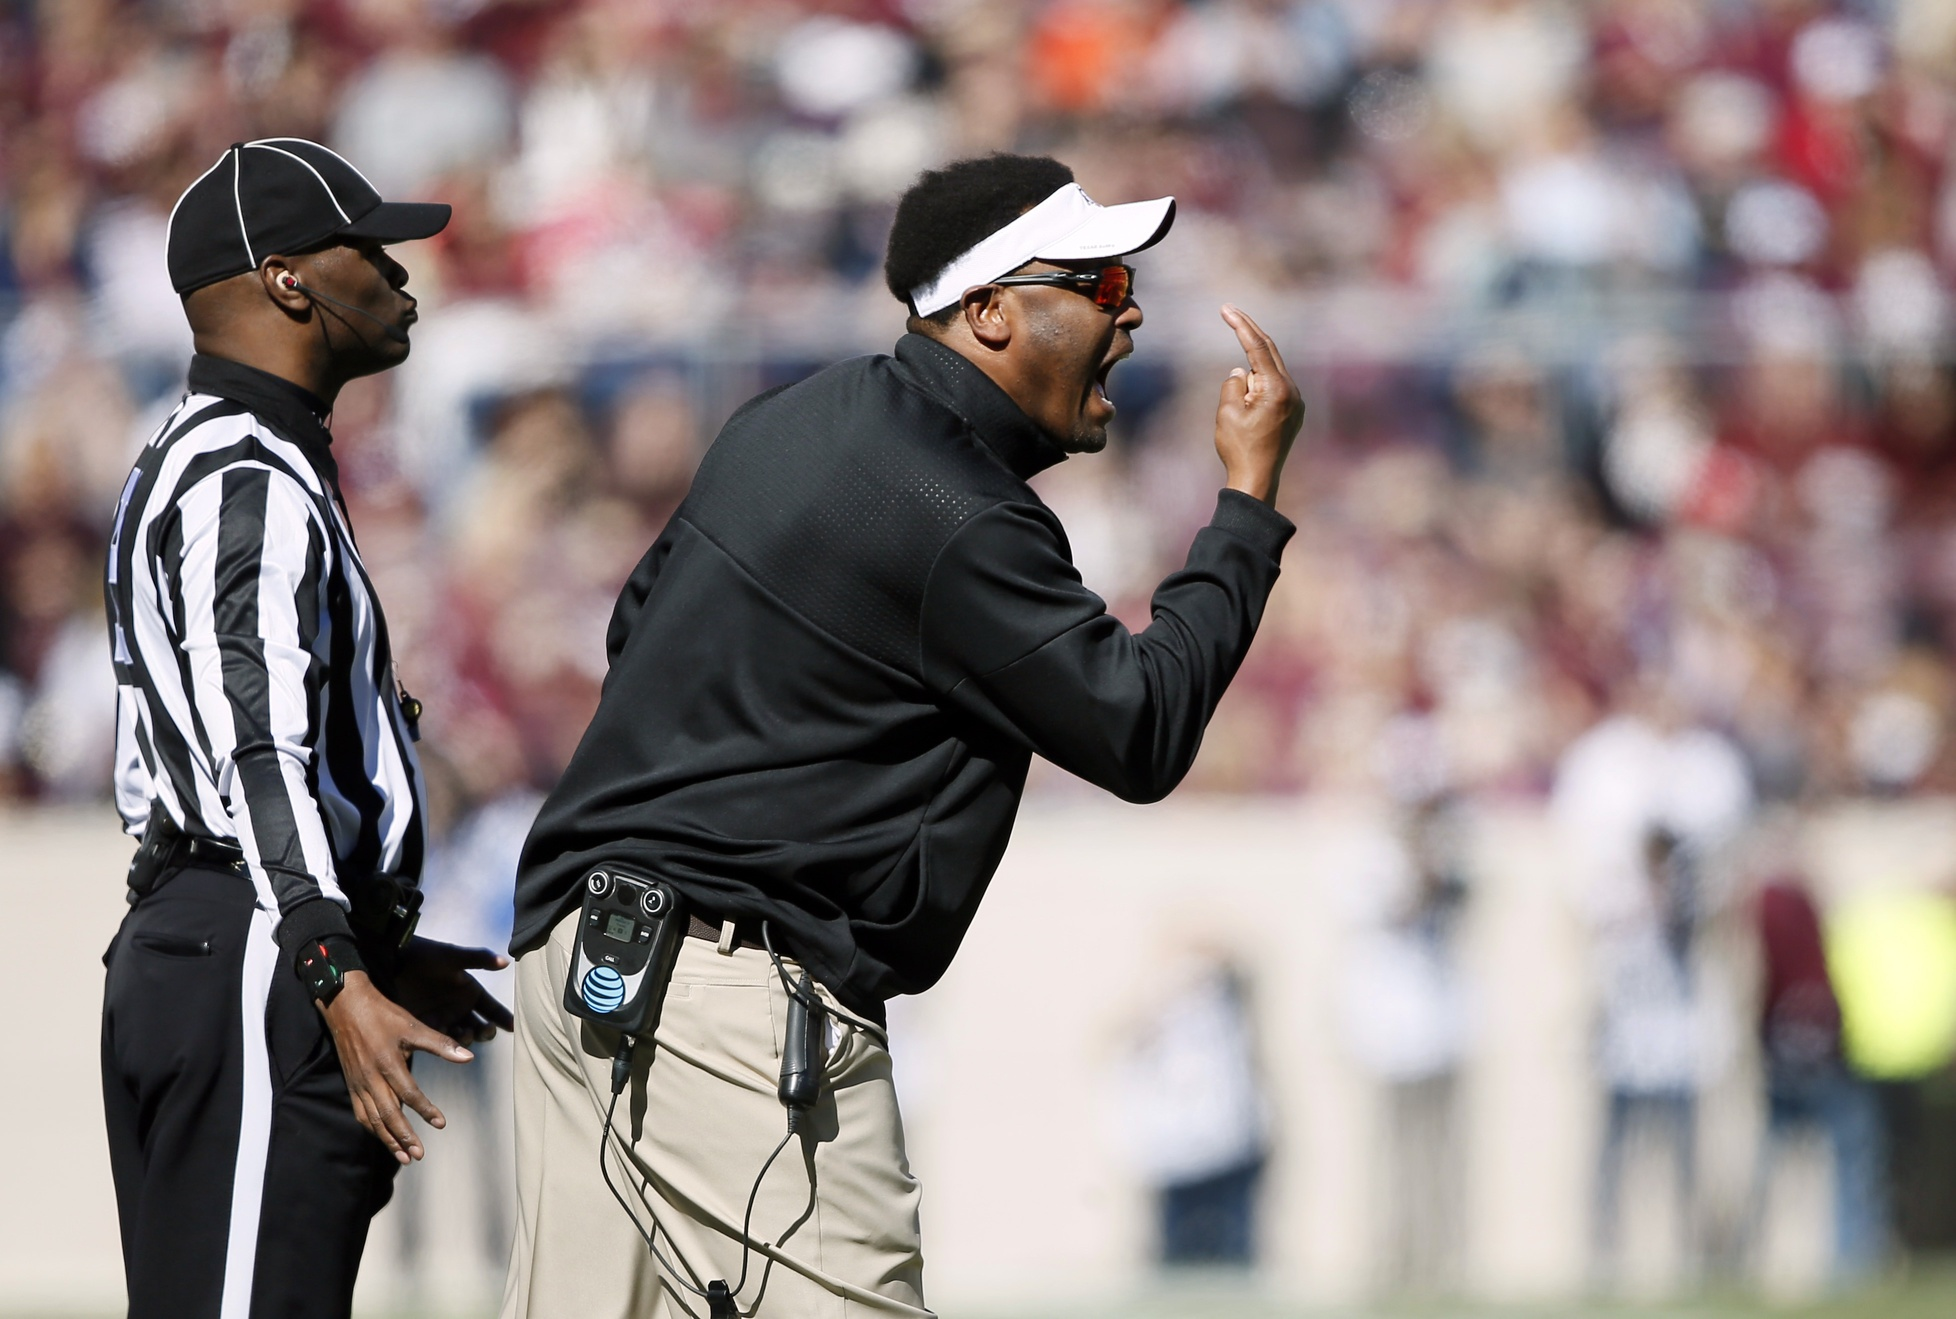 Nov 19, 2016; College Station, TX, USA; Texas A&M Aggies head coach Kevin Sumlin on the sidelines against the University of Texas at San Antonio Roadrunners at Kyle Field. Mandatory Credit: Erich Schlegel-USA TODAY Sports